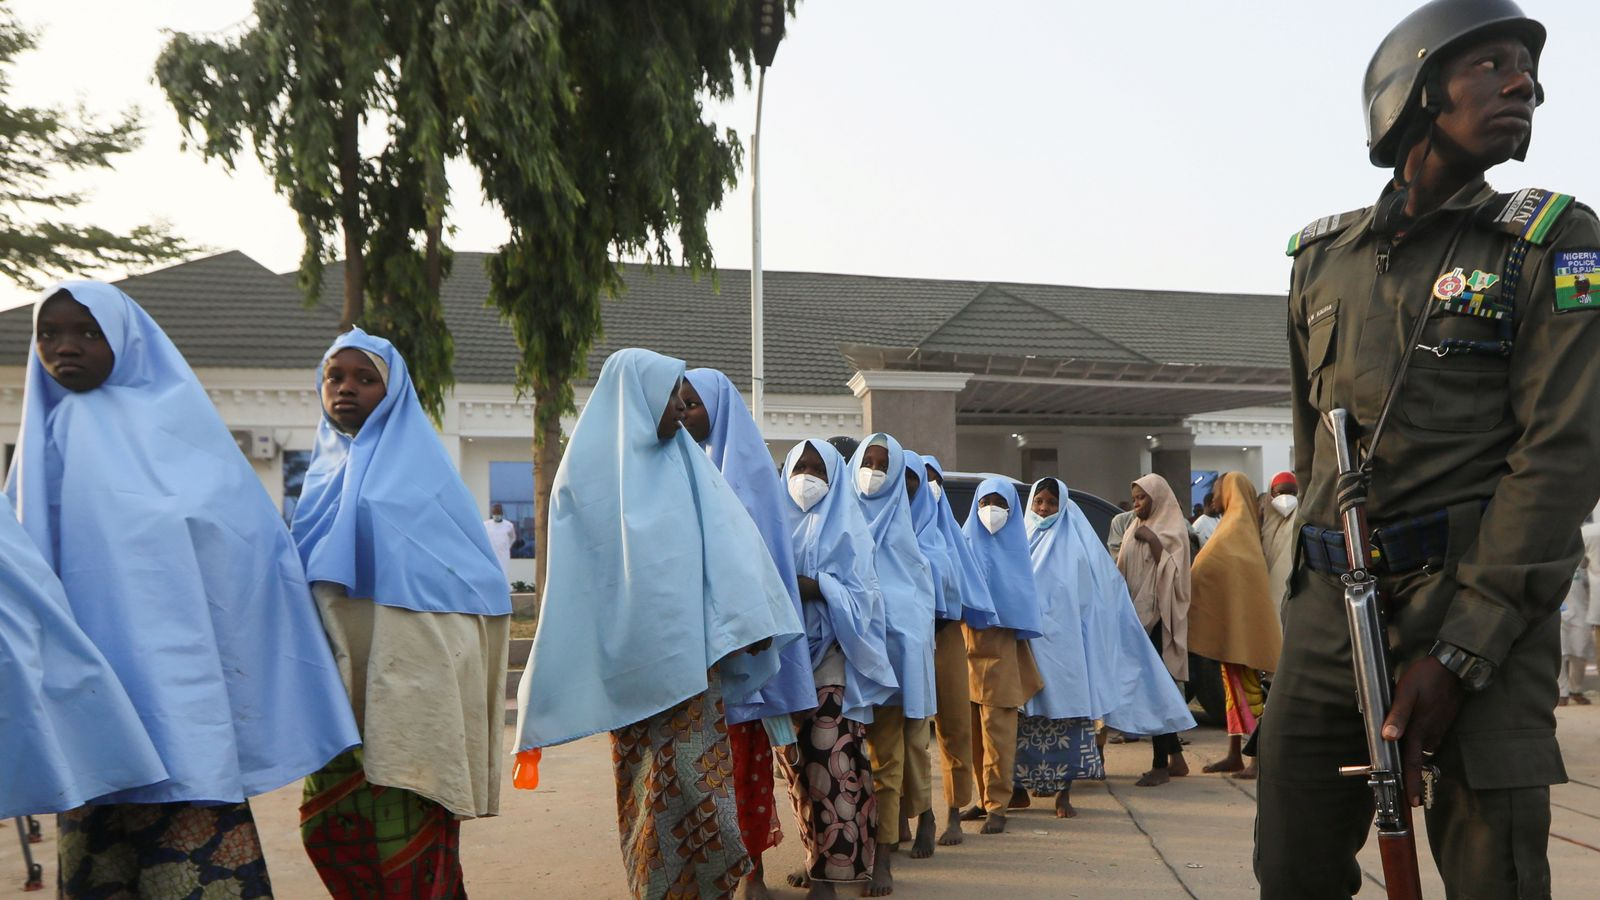 Nigeria: Released schoolgirls say kidnappers threatened to shoot them during three-day mass abduction